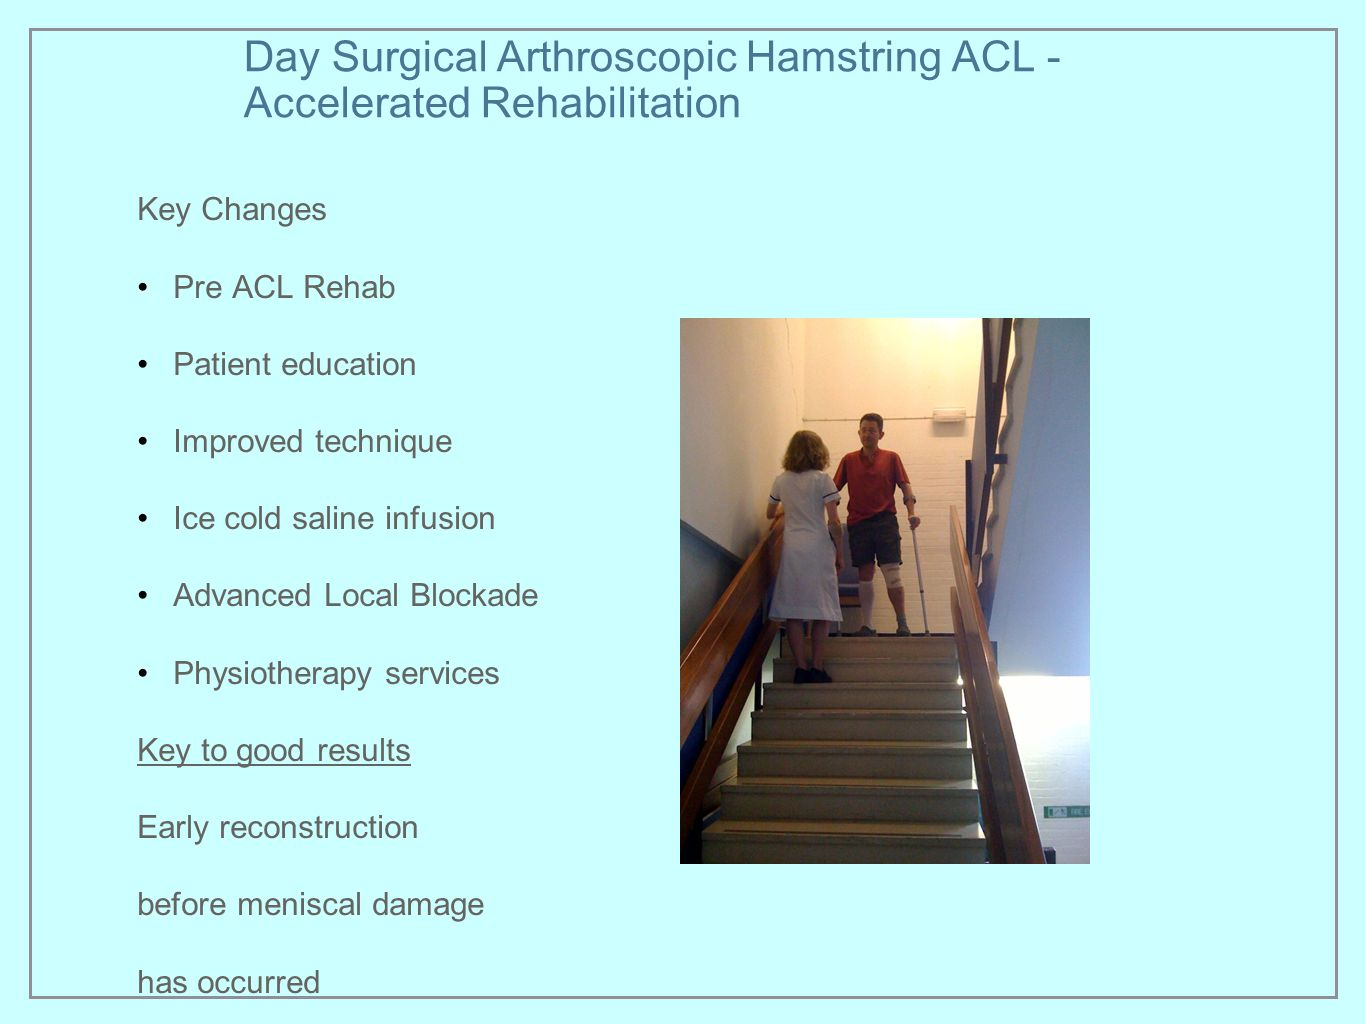 Day Surgical Arthroscopic Hamstring ACL - Accelerated Rehabilitation